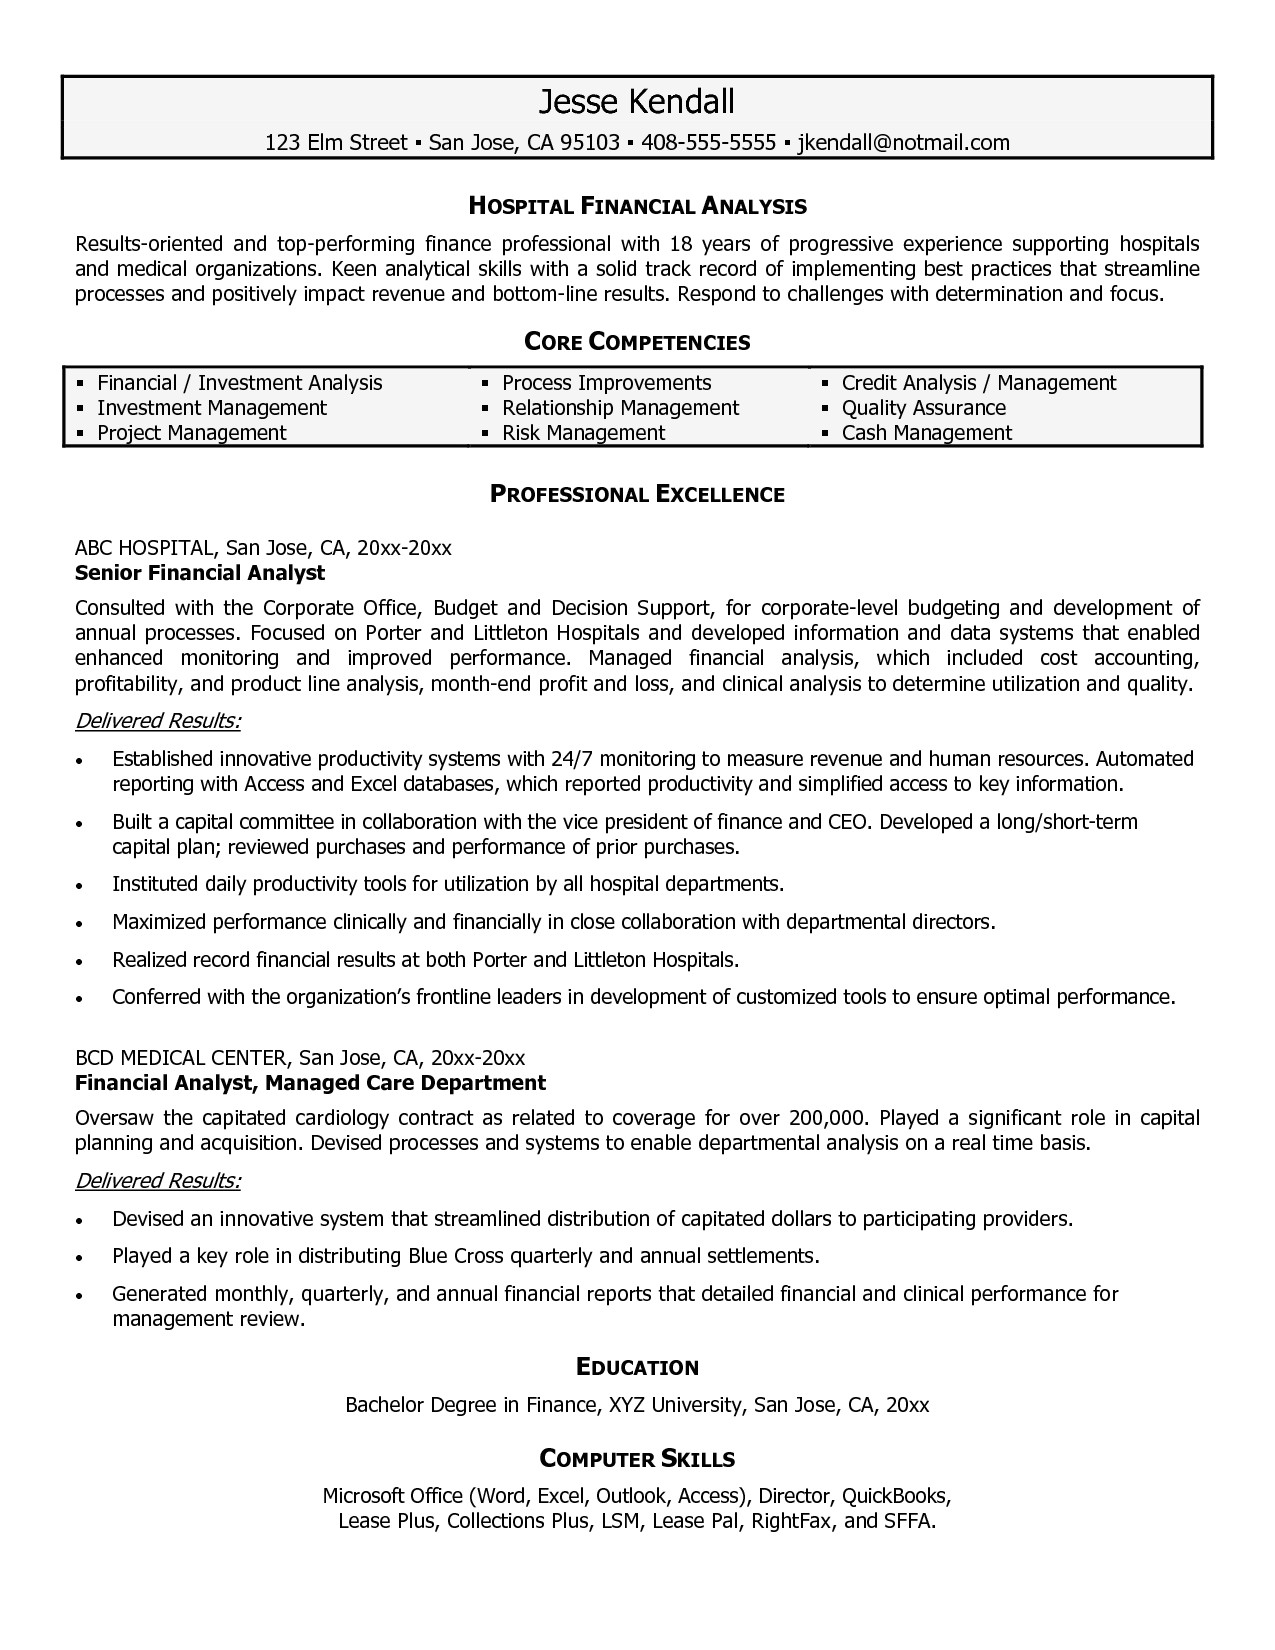 Sample Resume for Data Warehouse Analyst Data Analyst Job Description Resume 2017 forklifts Make